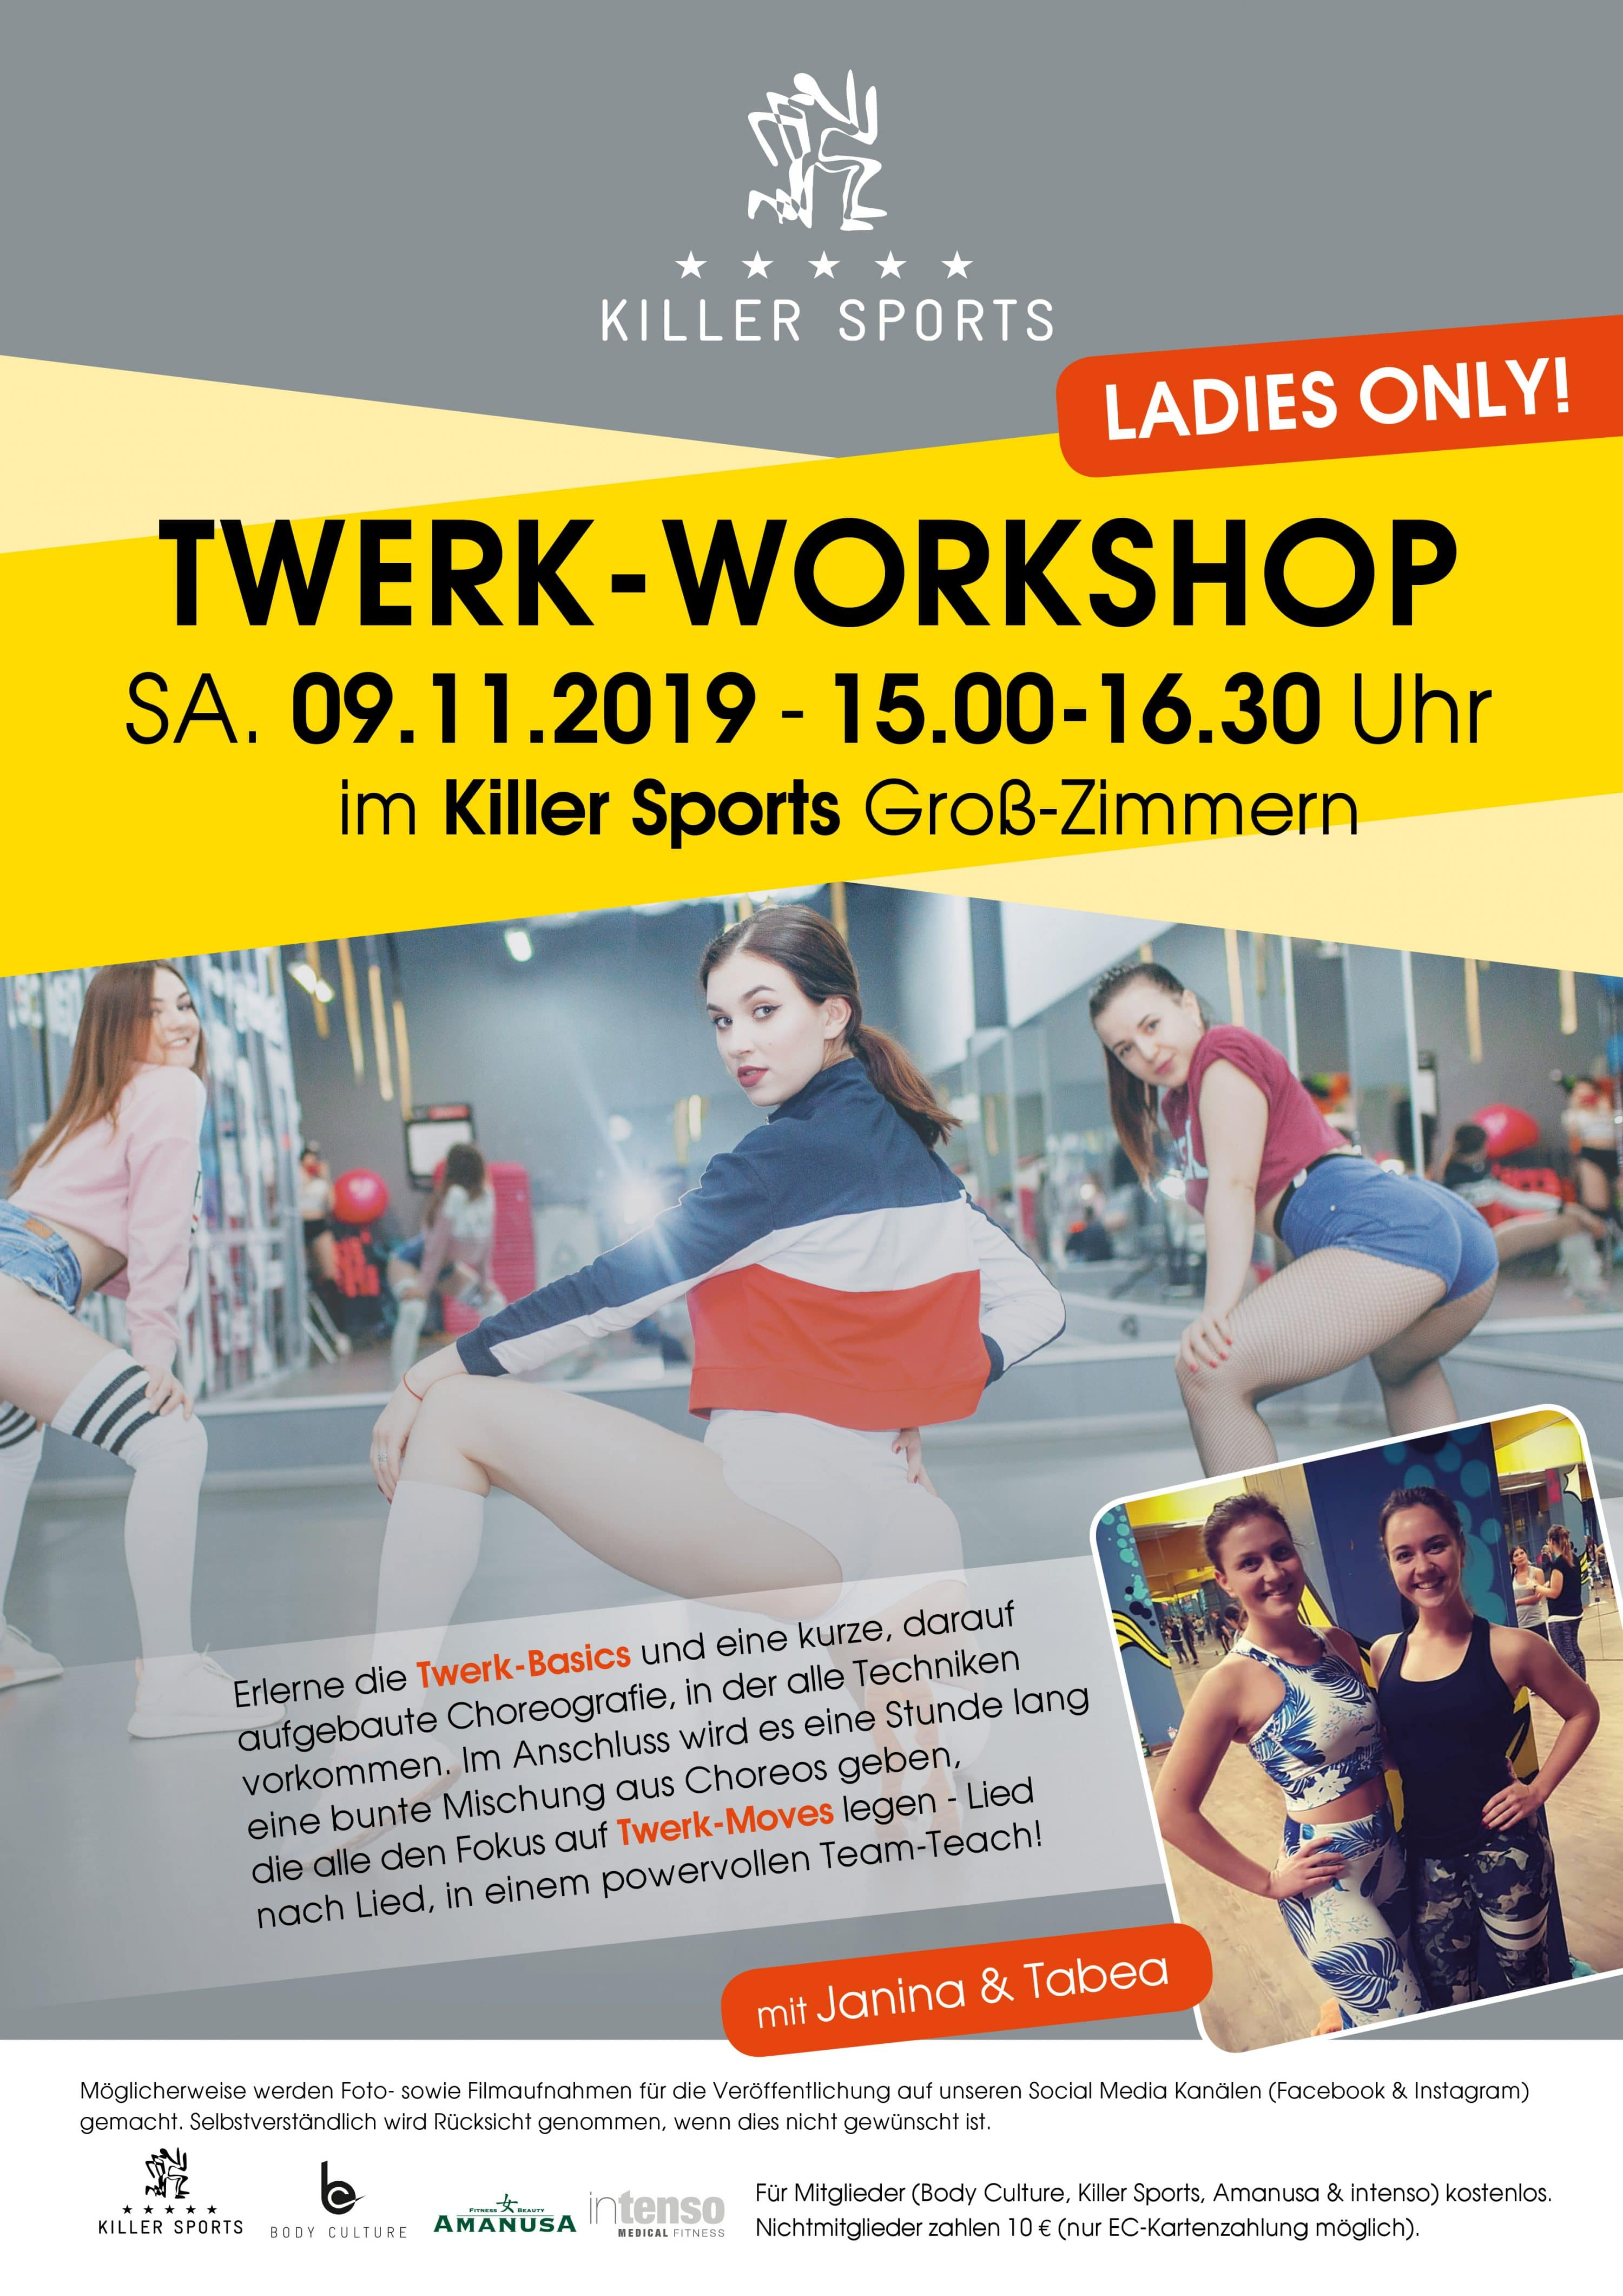 Twerk-Workshop im Killer Sports